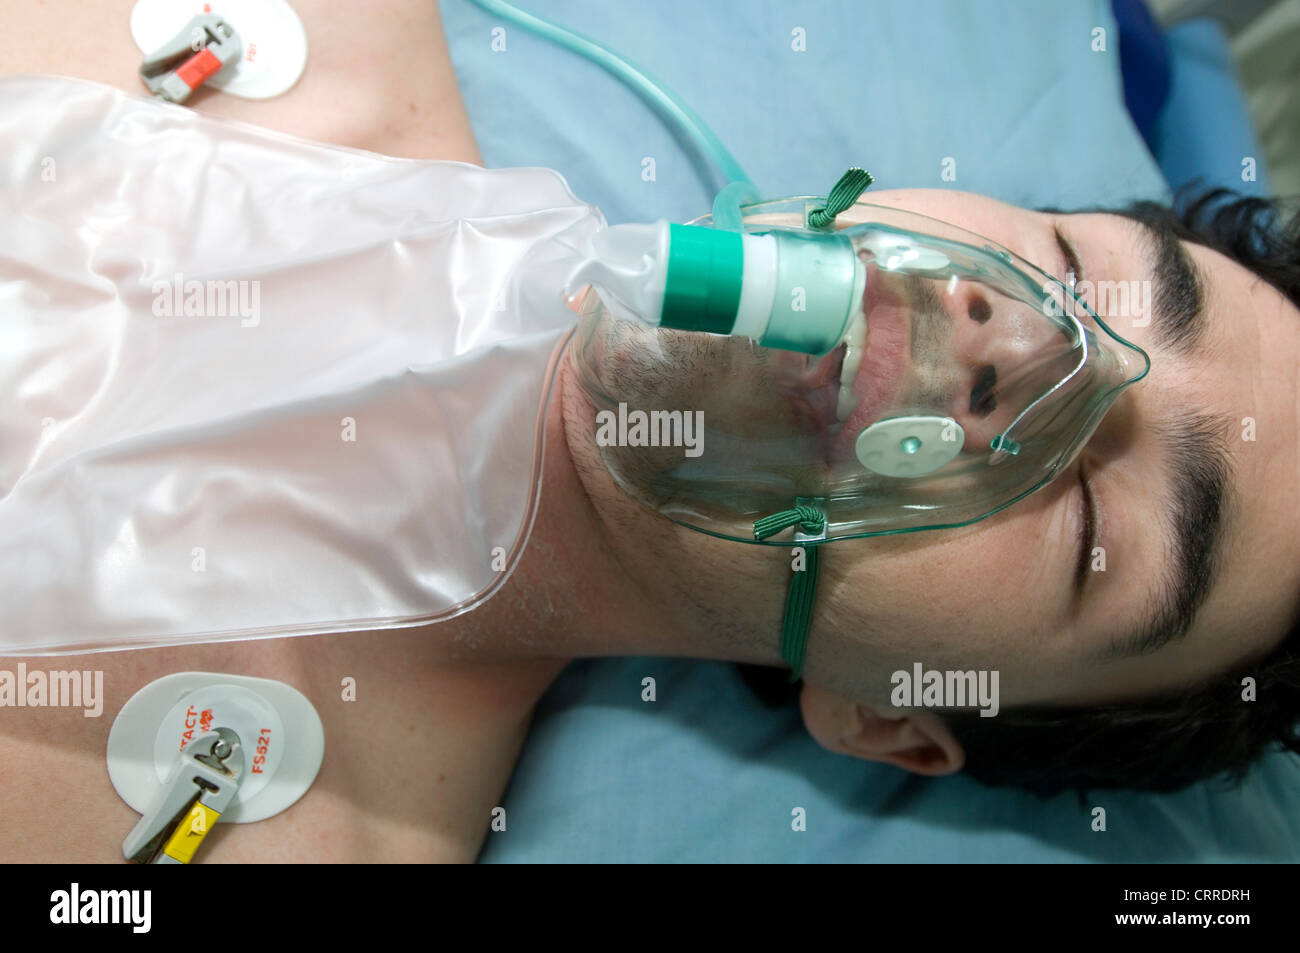 A patient with a compromised ability to inhale is given oxygen via a face mask enabling him to breathe more easily. - Stock Image